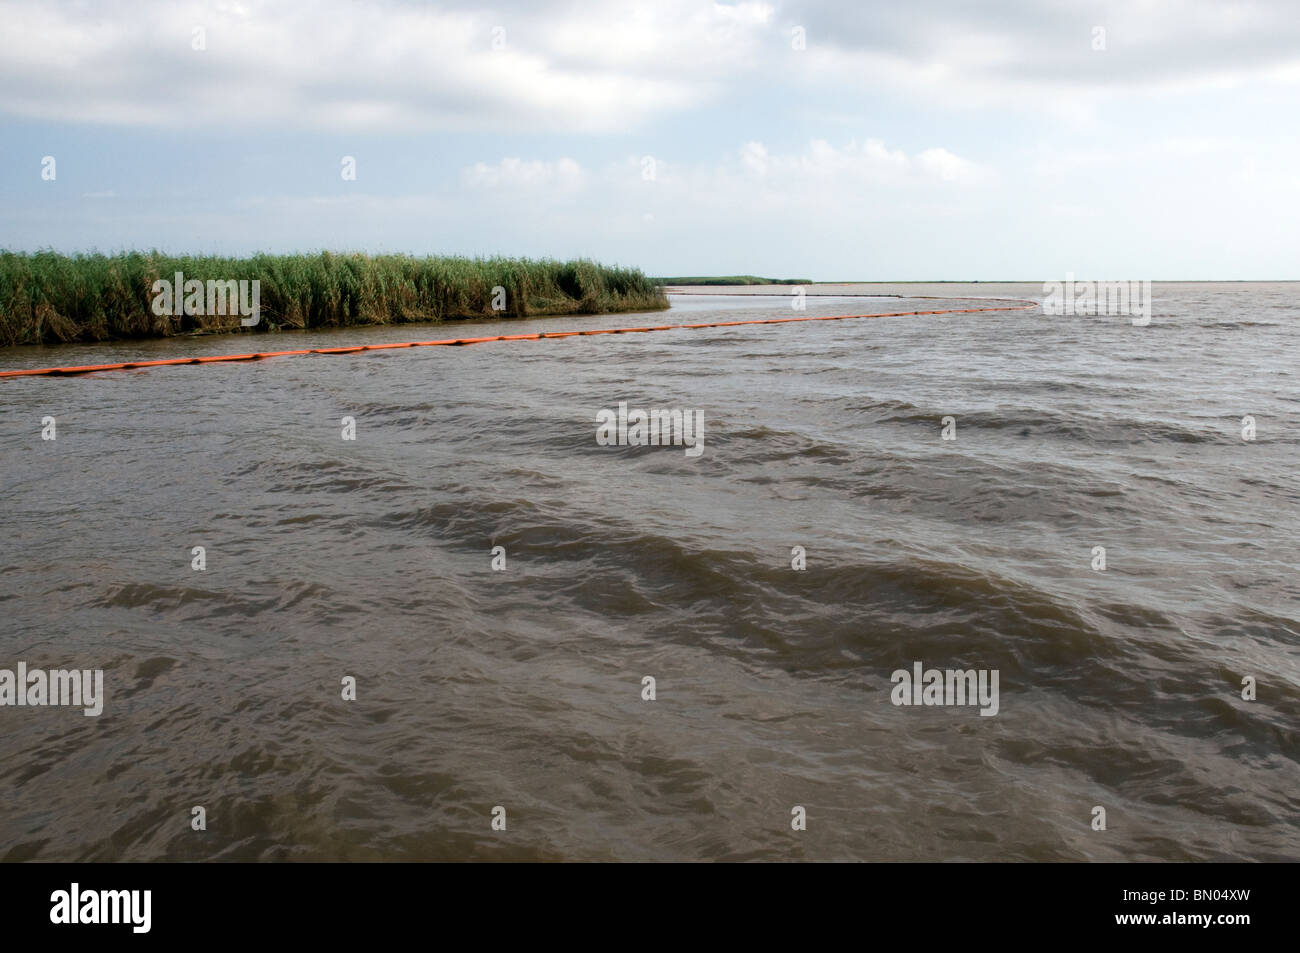 Protective boom surrounding marshes in Barataria Bay, LA, during BP oil spill - Stock Image